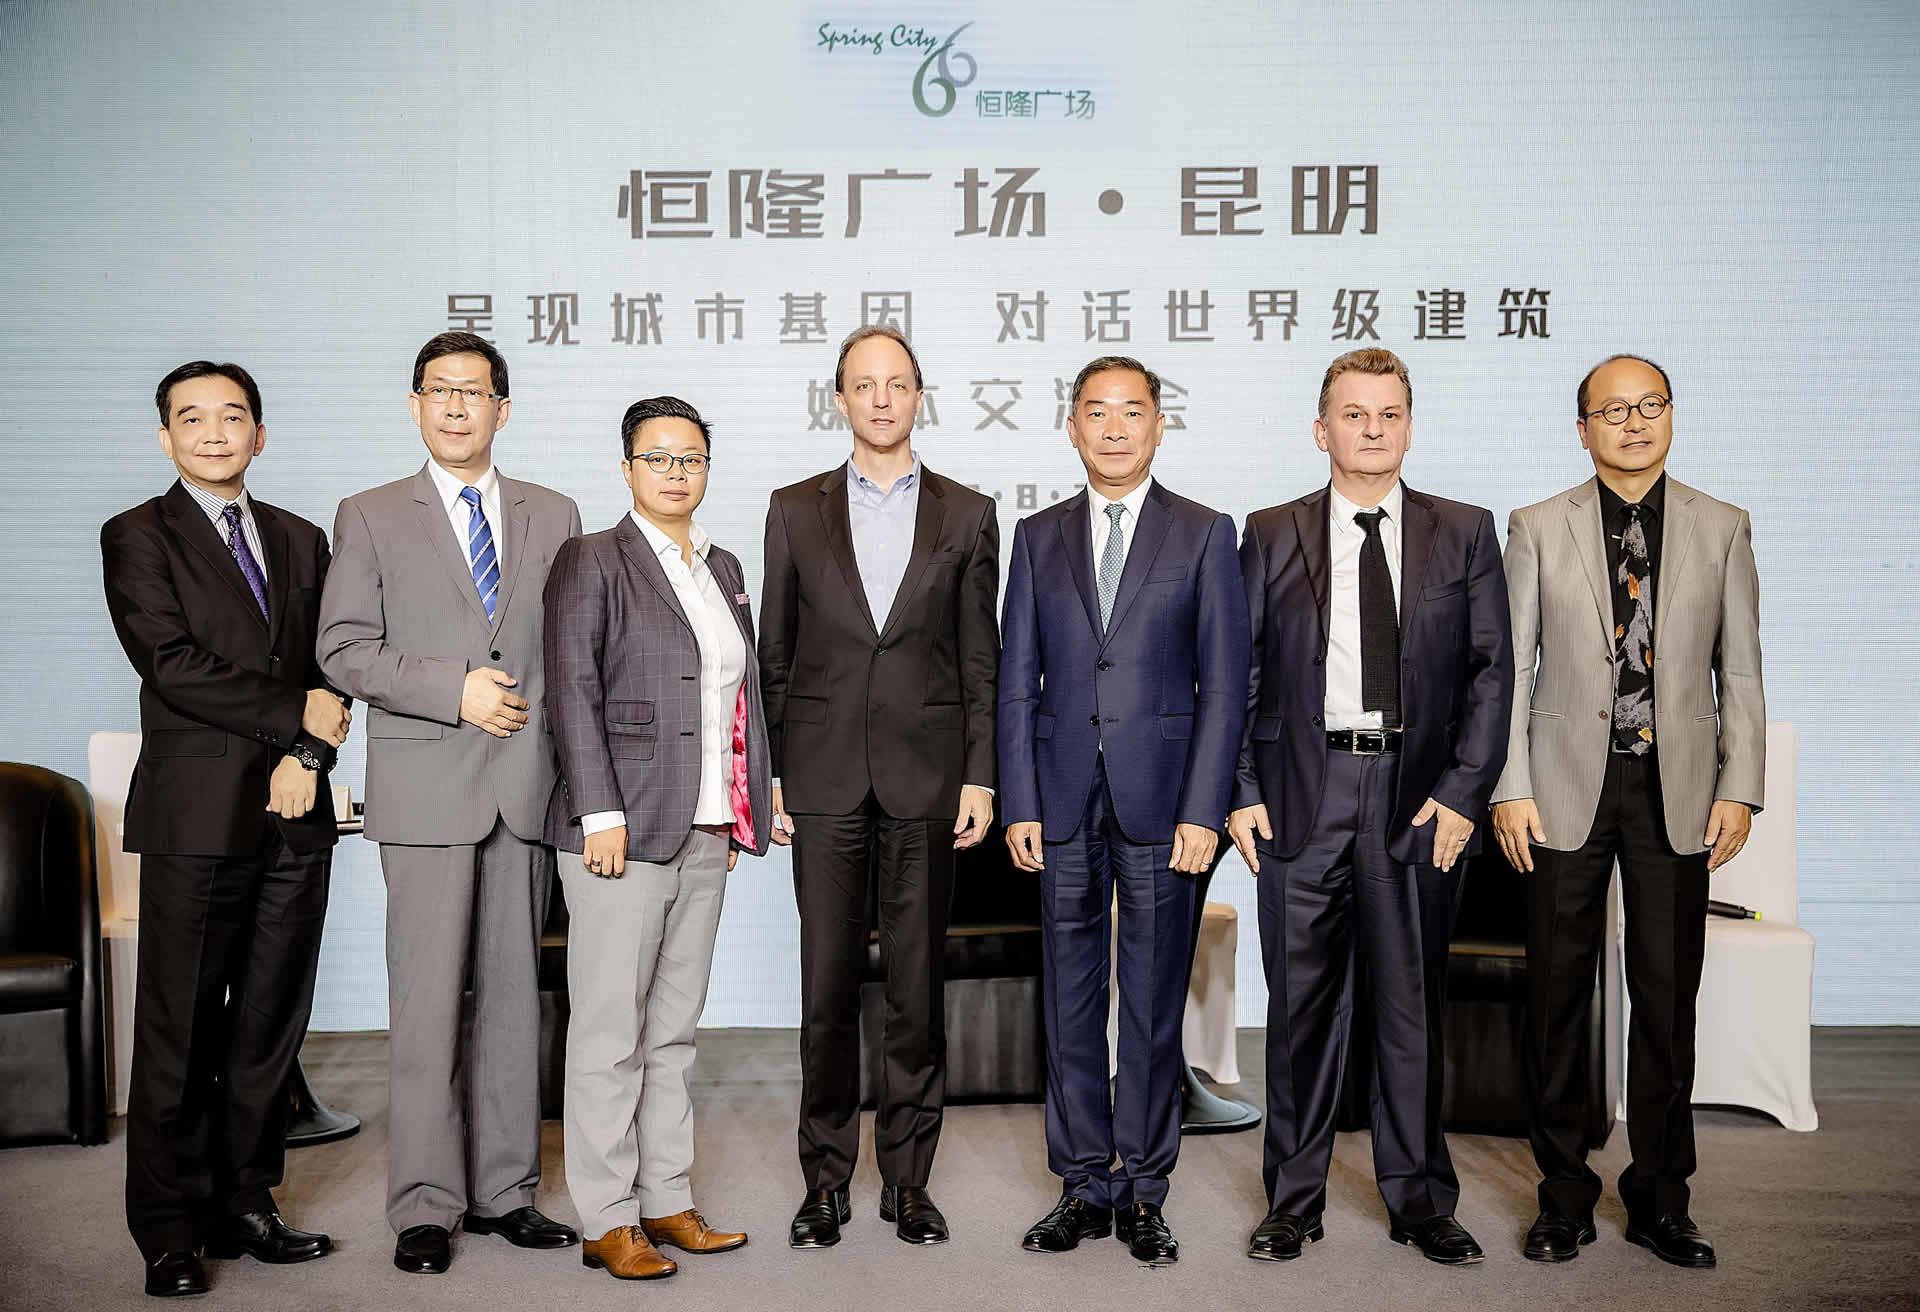 Mr. Adrian Lo (3rd from right), Director – Project Management of Hang Lung Properties; Mr. Peter Gross (4th from left), Principal of KPF and Ms. Lau Yee Tak (3rd from left), Senior Associate Principal of KPF; Mr. Richard Wood (2nd from right), Director of Concept i and Mr. Wang Qi (1st from right), Managing Director, China of Concept i;  Mr. Joseph Leung (2nd from left), Director of JRP and Mr. Kelvin Chan (1st from left), Project Manager of JRP, share insights into the design concept of Spring City 66 and progress at the project with members of the media.